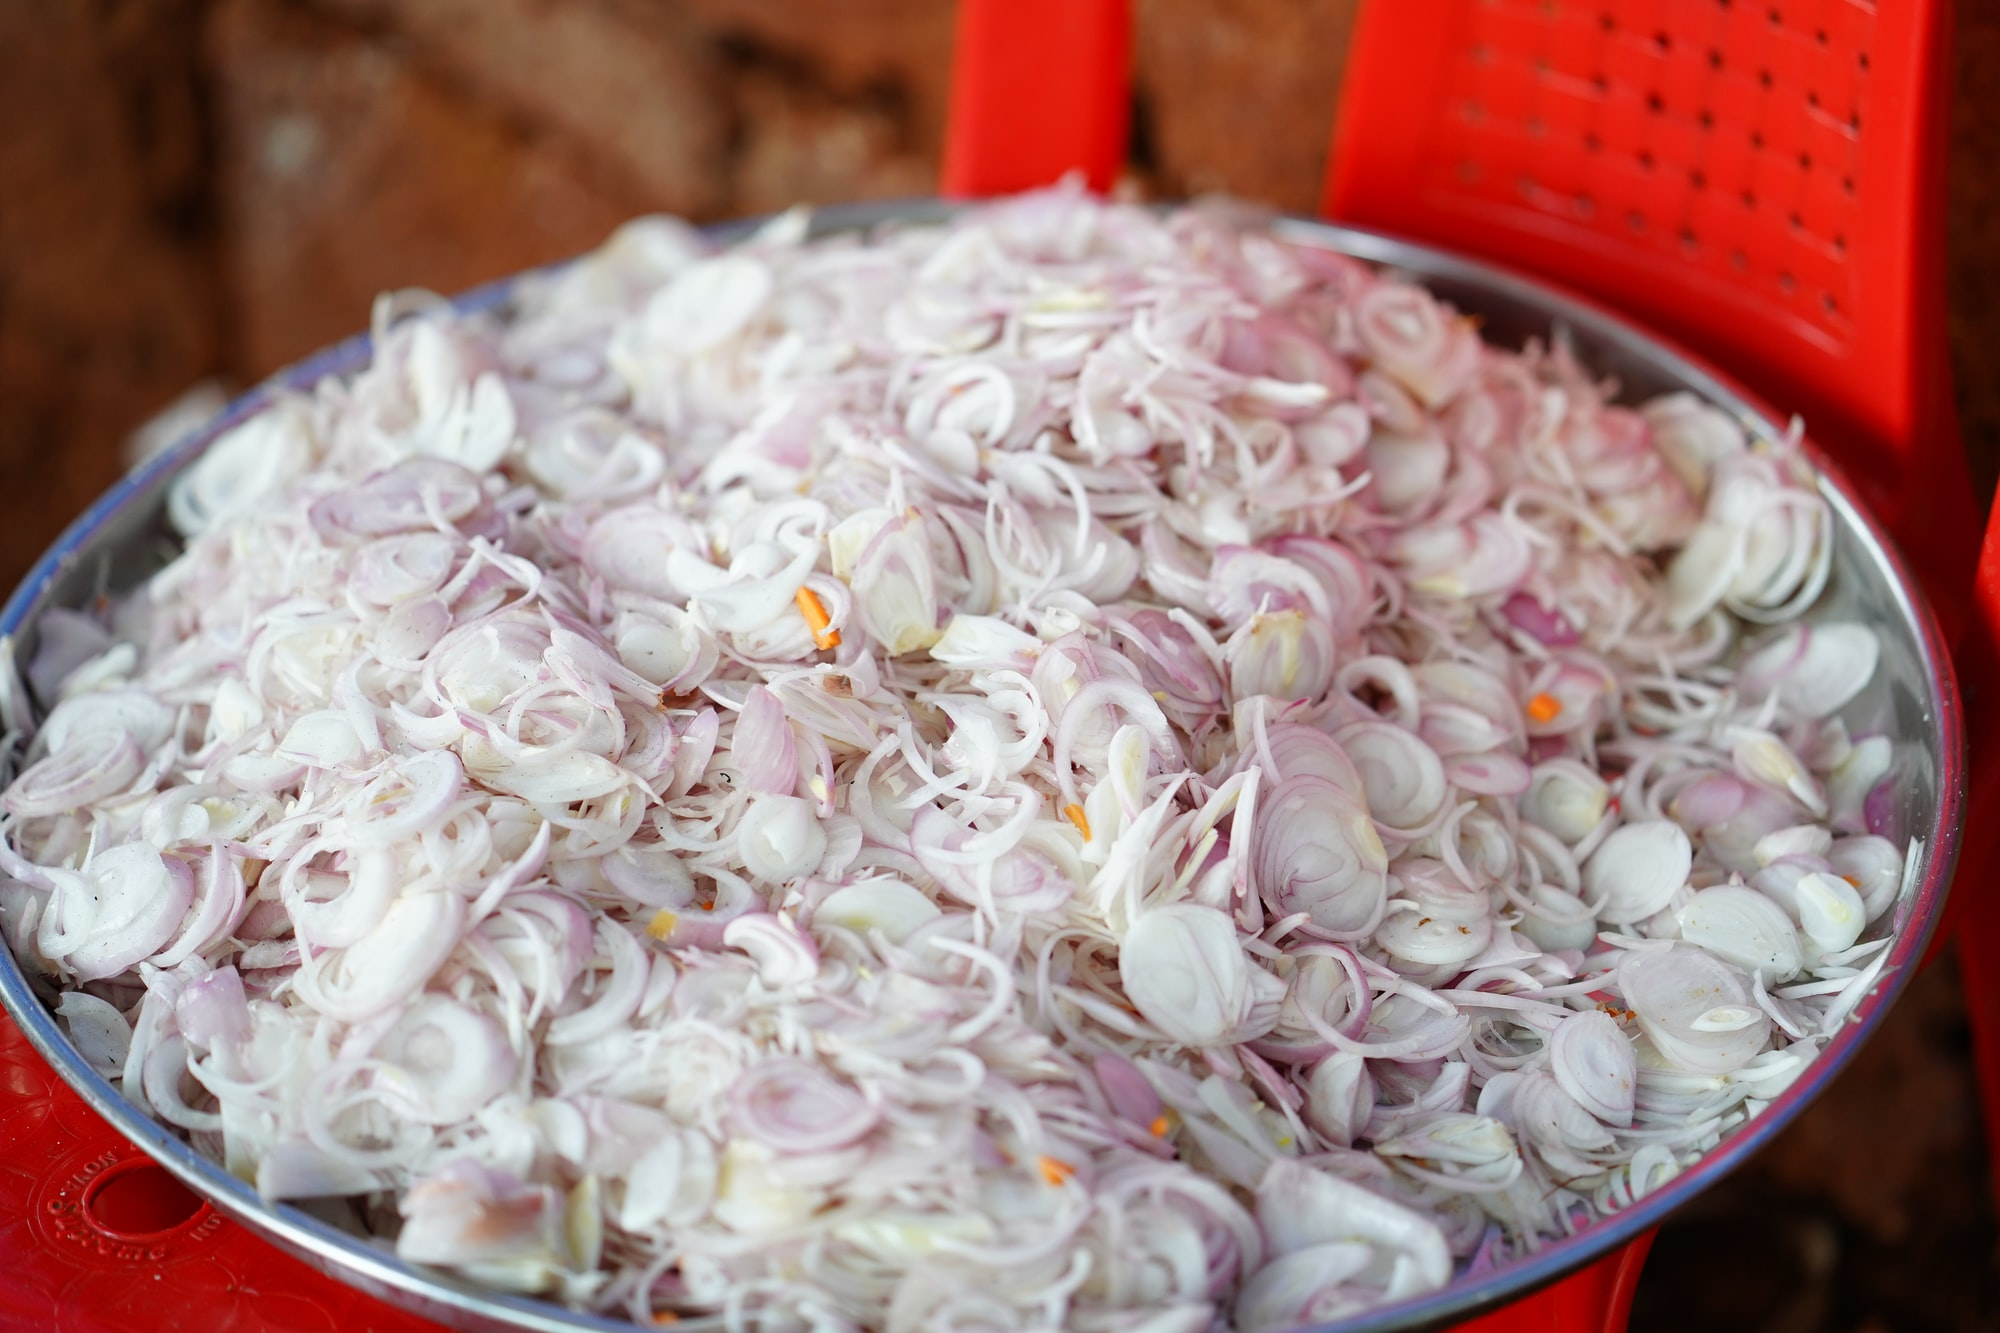 An stainless steel plate full of sliced onions, placed on a red plastic chair.